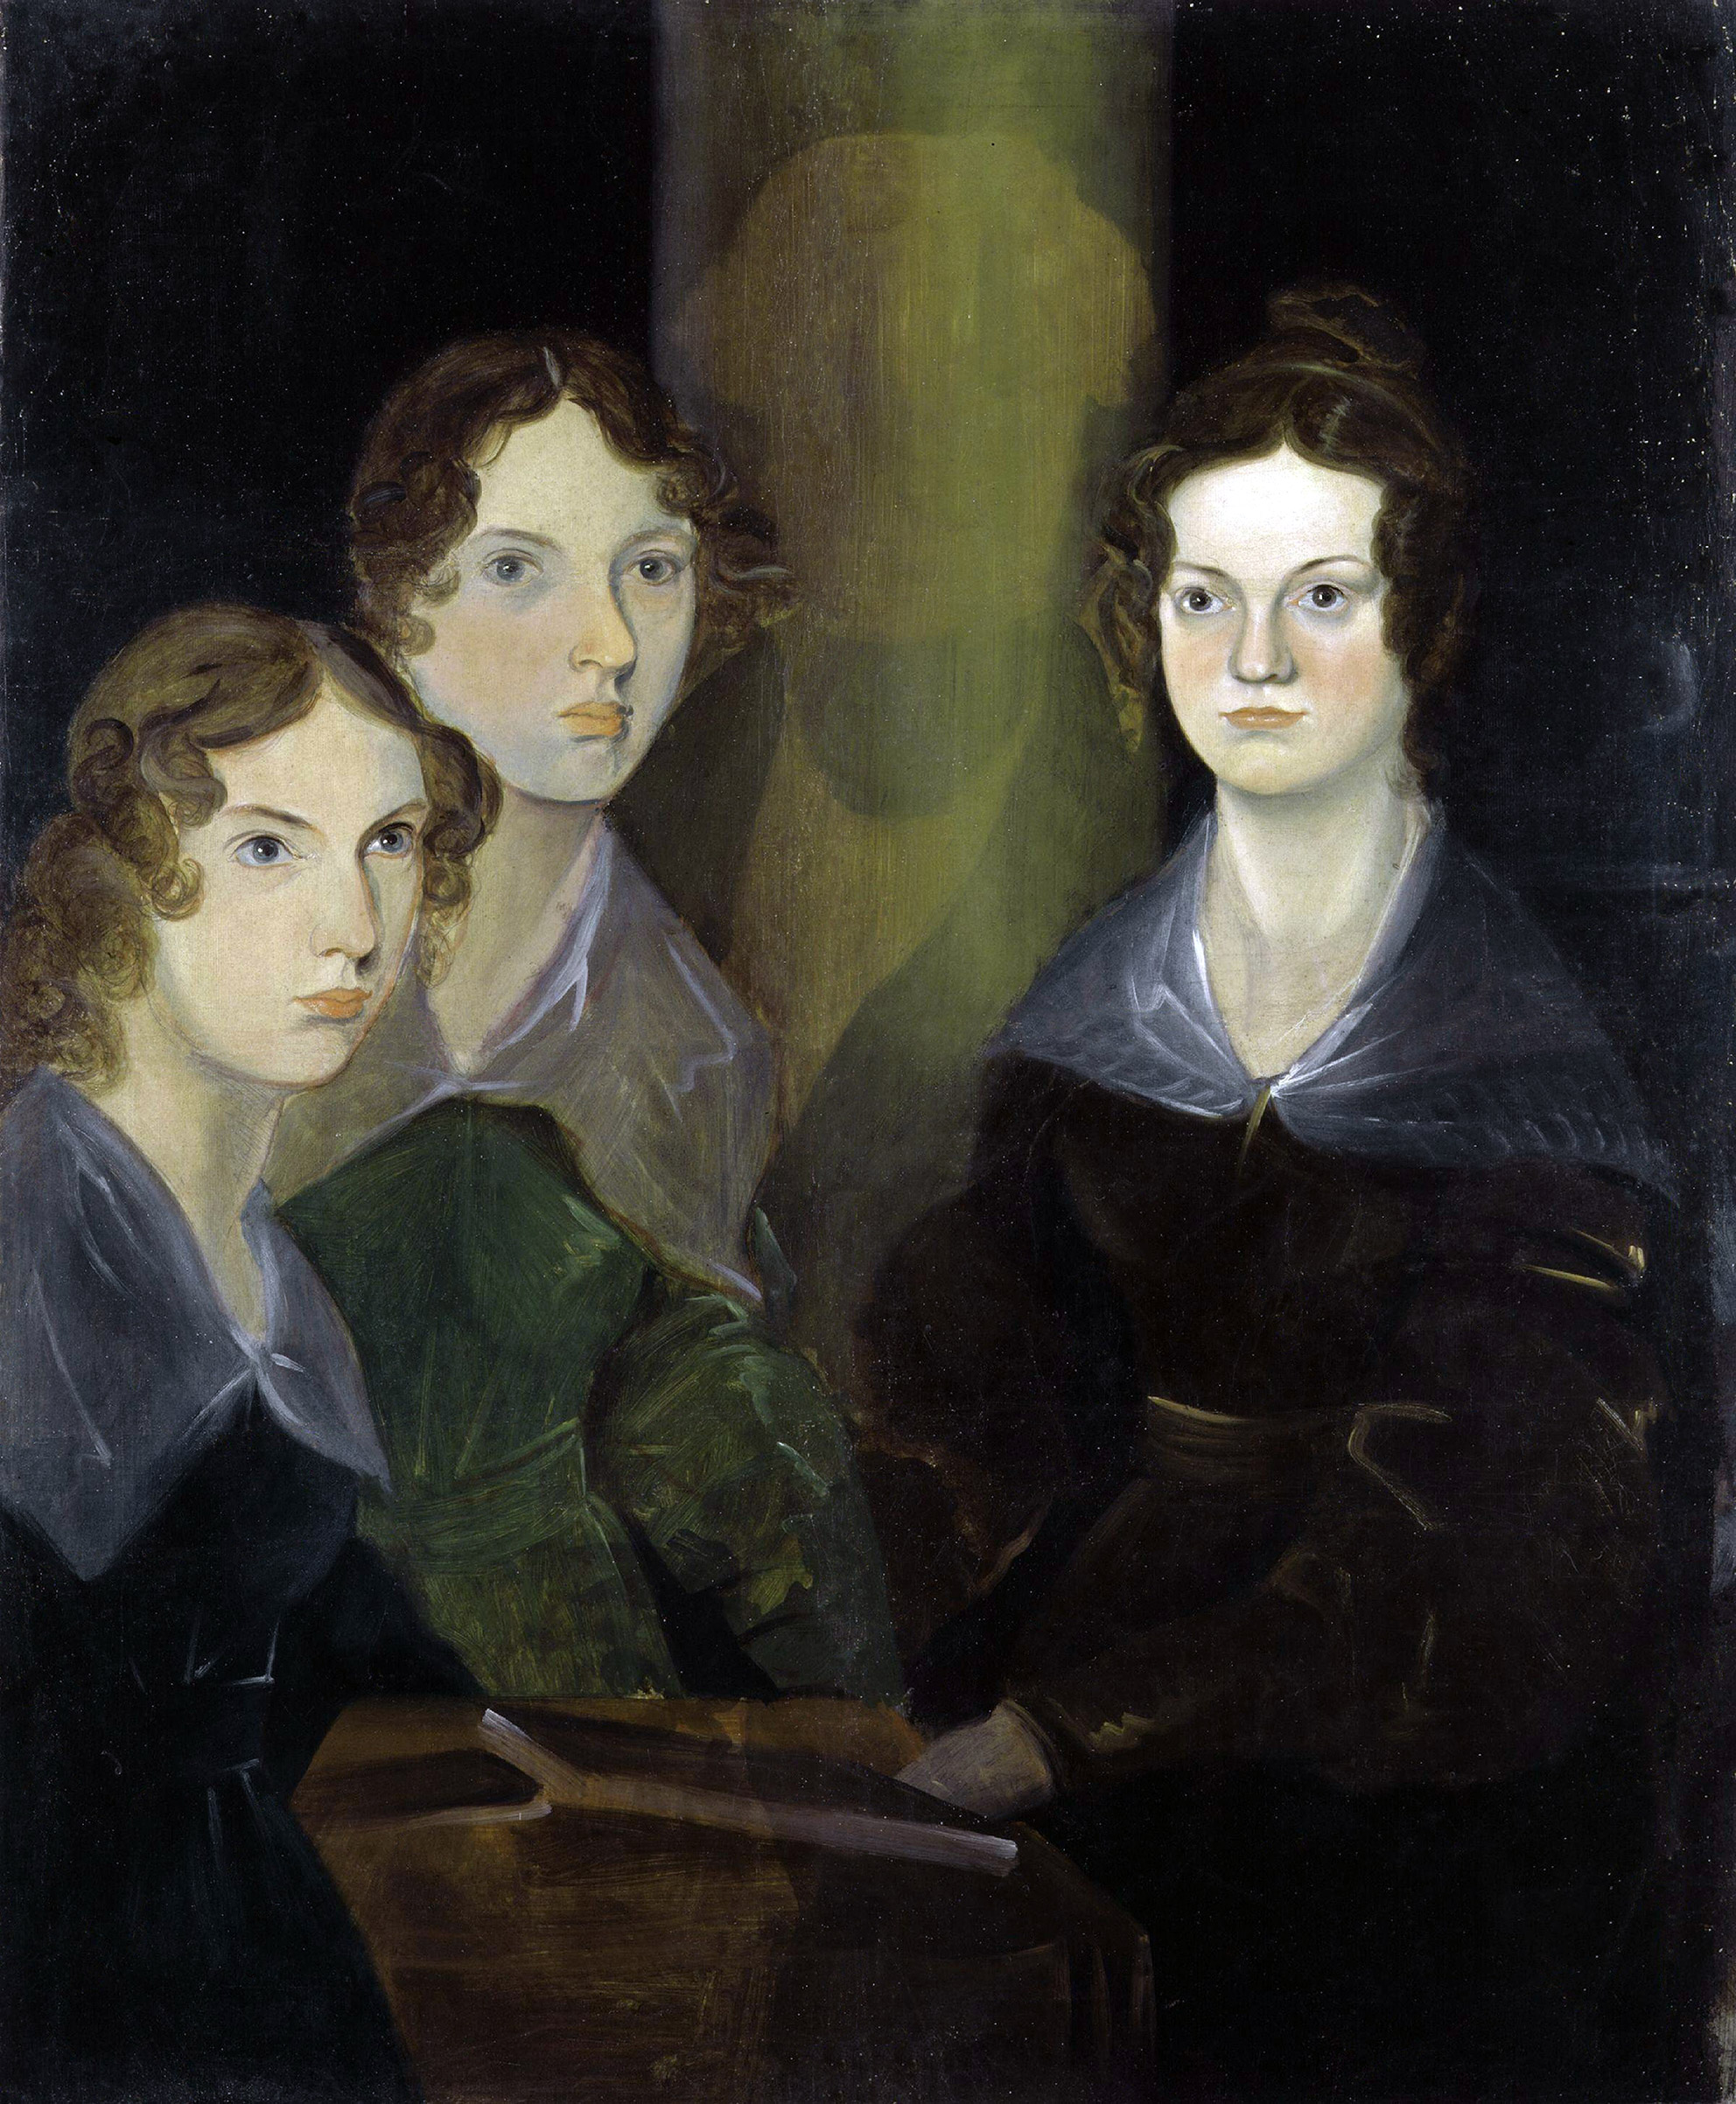 The Bronte sisters, writers, painted by their brother Patrick Branwell Bronte, circa 1834.